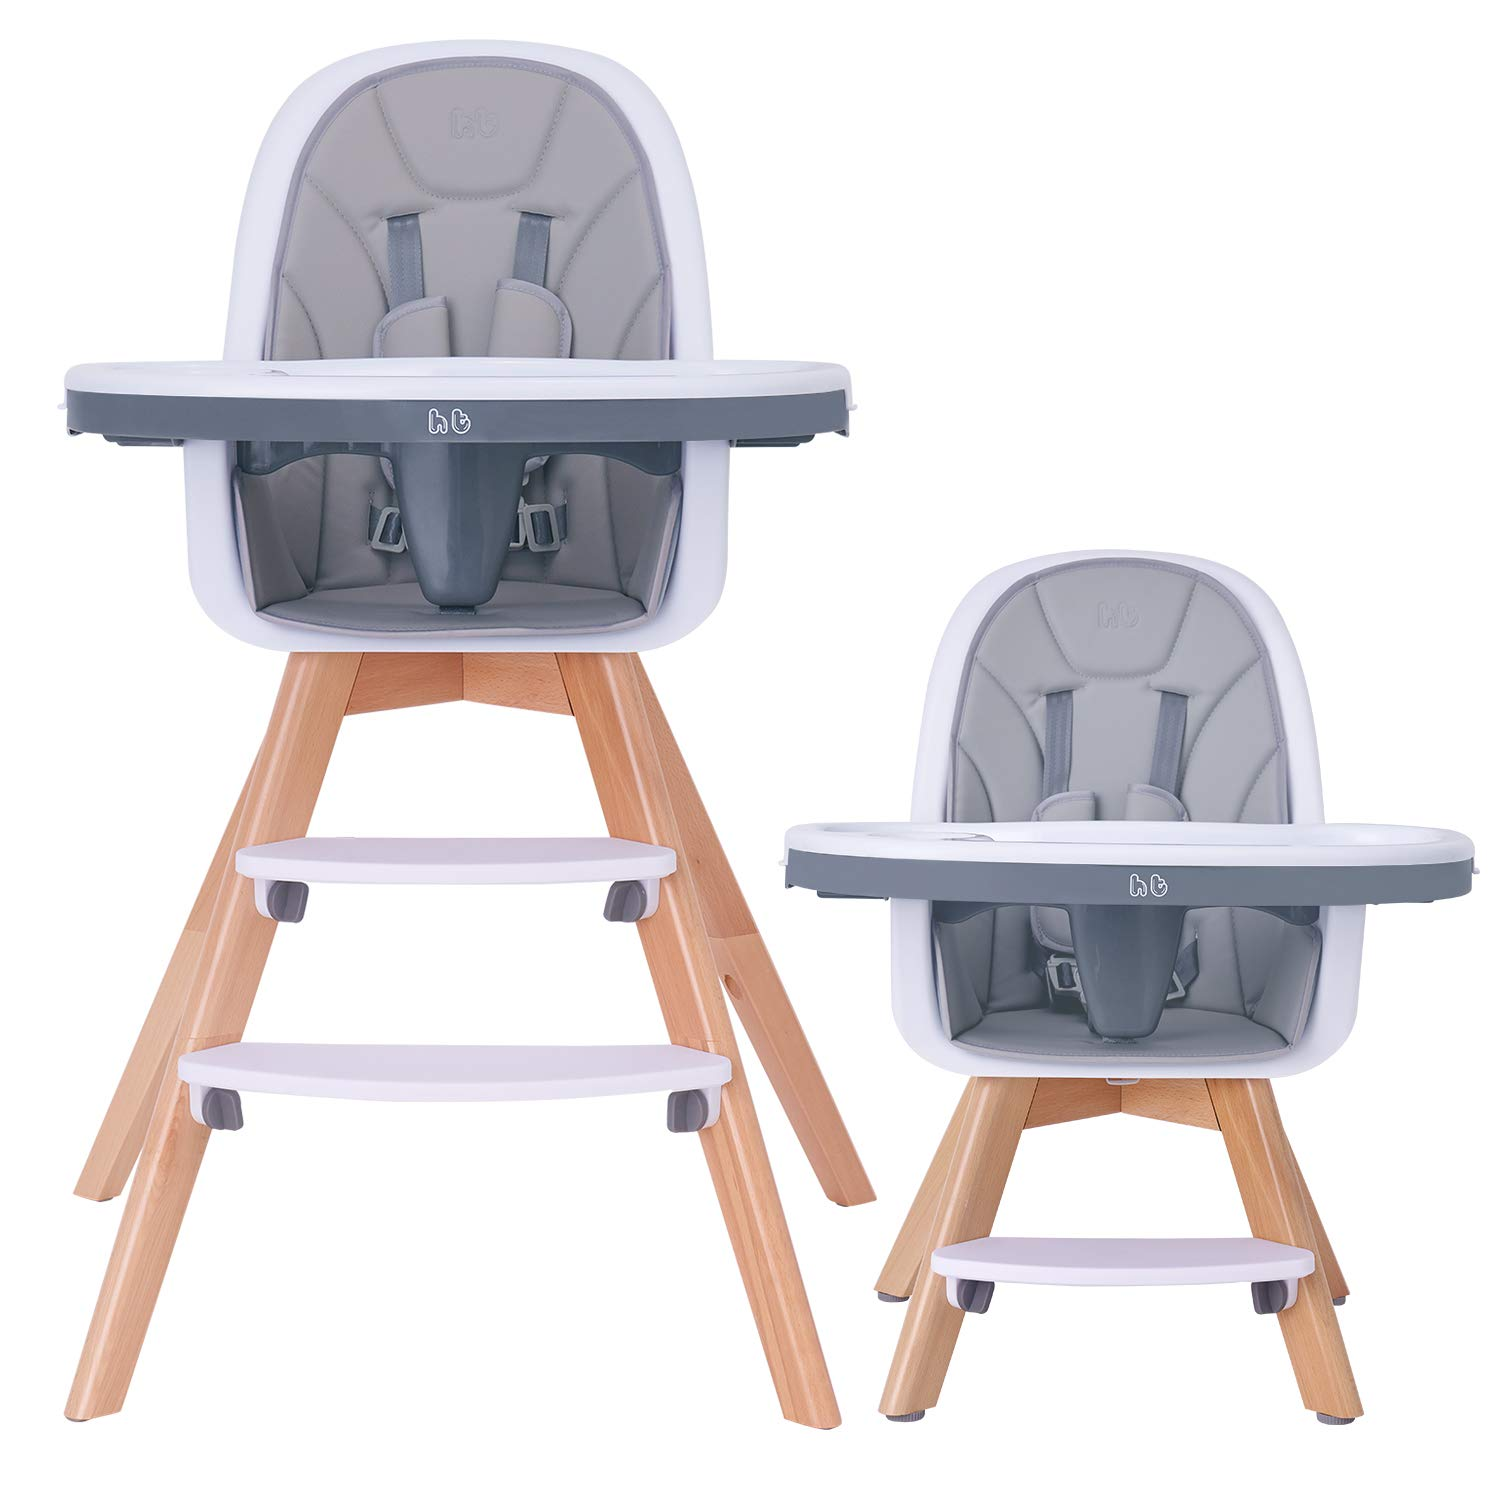 HAN-MM Baby High Chair with Removable Gray Tray, Wooden High Chair, Adjustable Legs, Harness, Feeding Baby High Chairs for Baby/Infants/Toddlers by HAN-MM